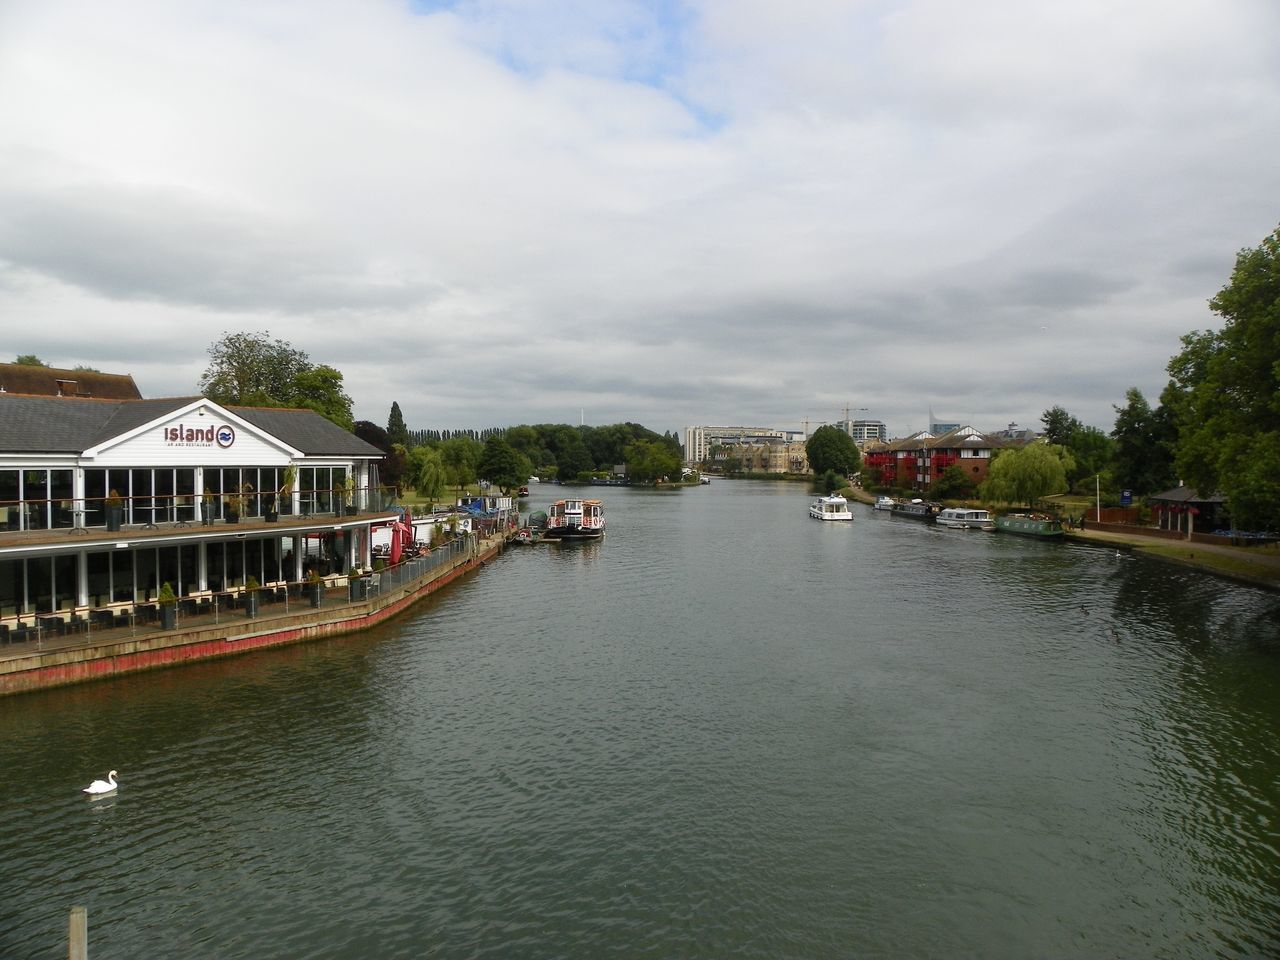 Caversham Caversham Bridge Water Sky Building Exterior Architecture Built Structure Nautical Vessel Mode Of Transport Tree Waterfront Outdoors Transportation Nature Cloud - Sky Beauty In Nature Day Scenics No People